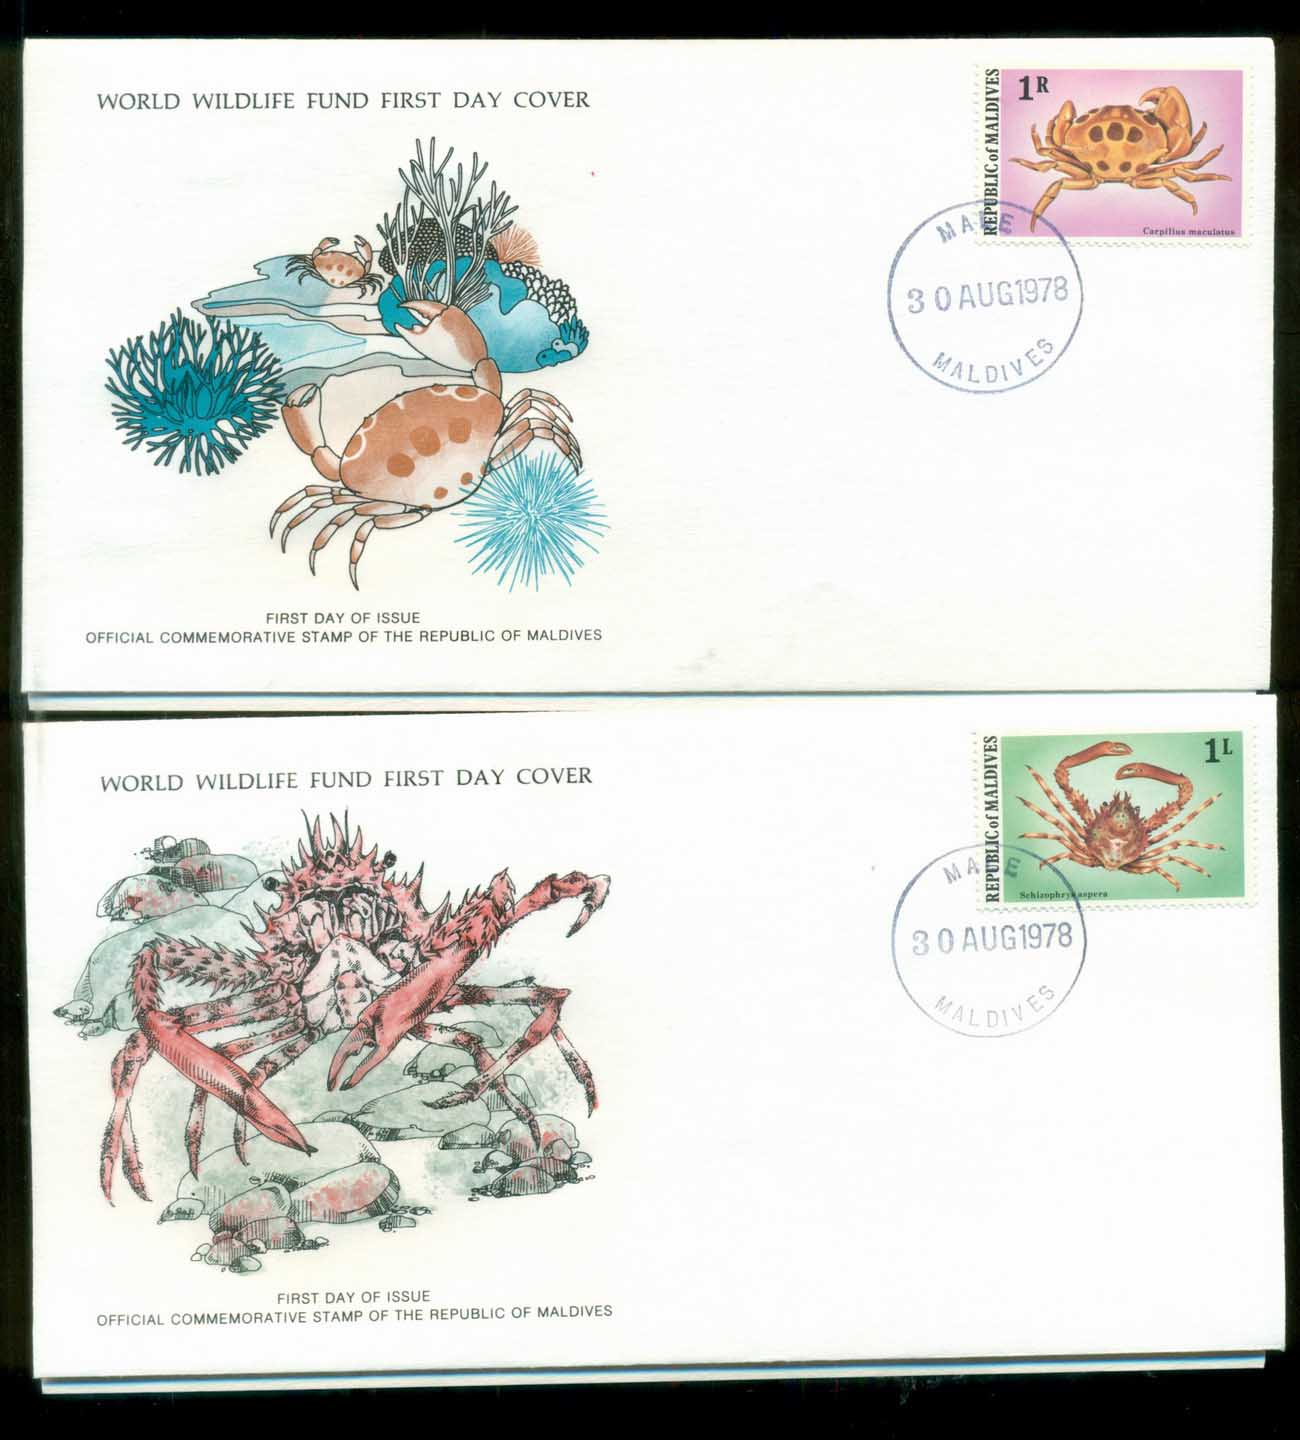 Maldives 1978 WWF,Crab, ,Franlkin Mint (with inserts) 2xFDC lot79619